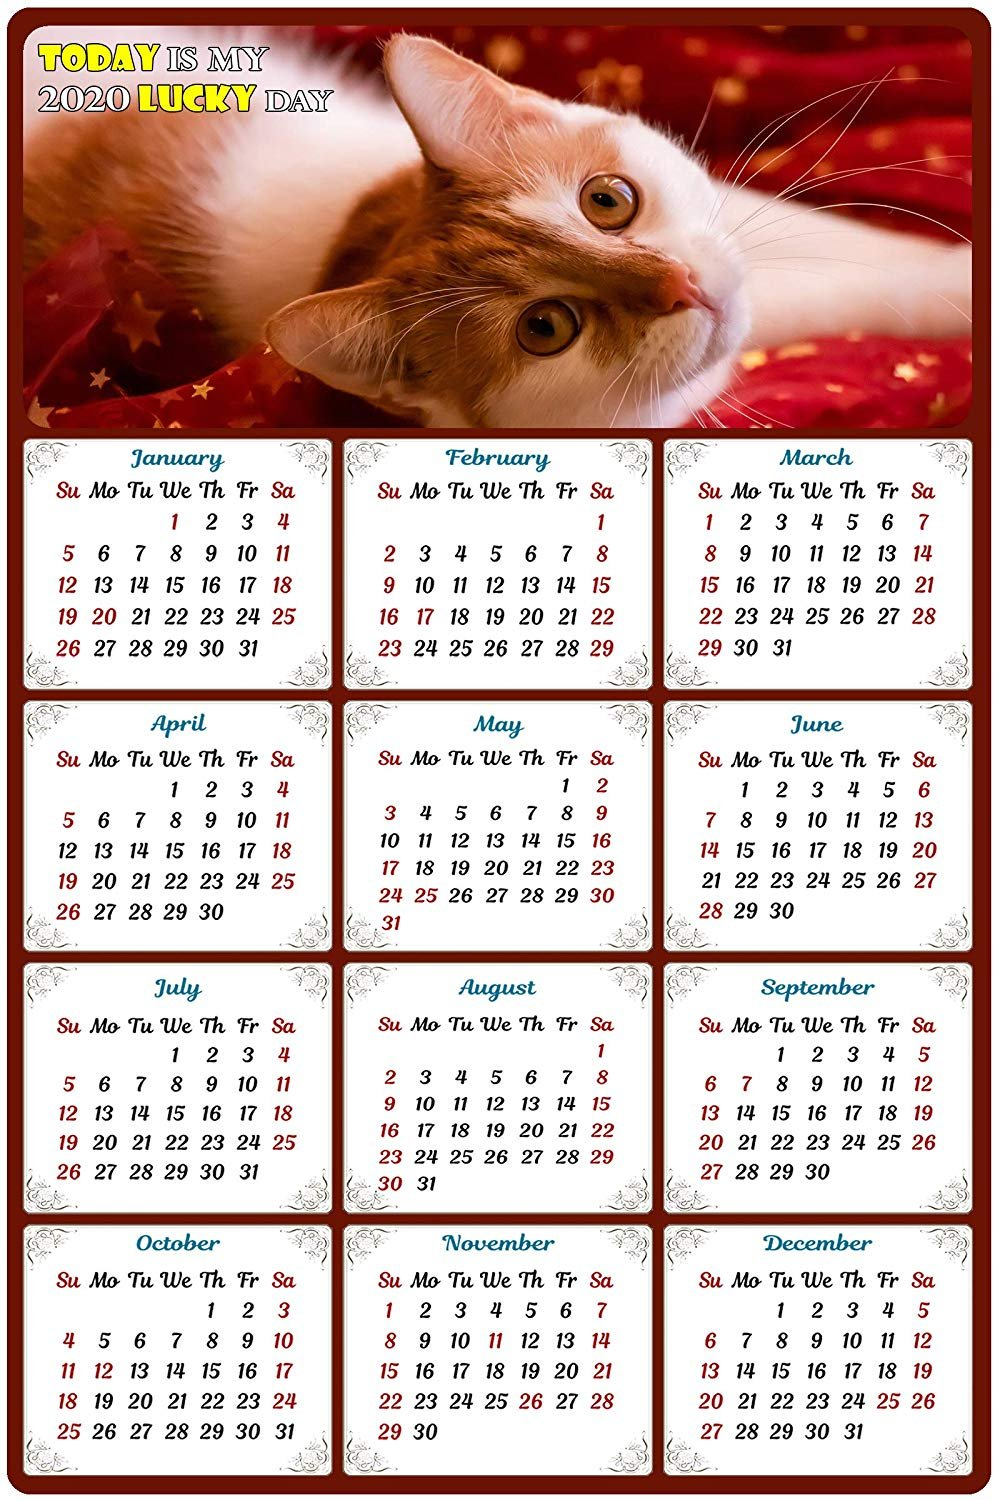 2020 Magnetic Calendar - Calendar Magnets - Today is My Lucky Day - Cat Themed 7